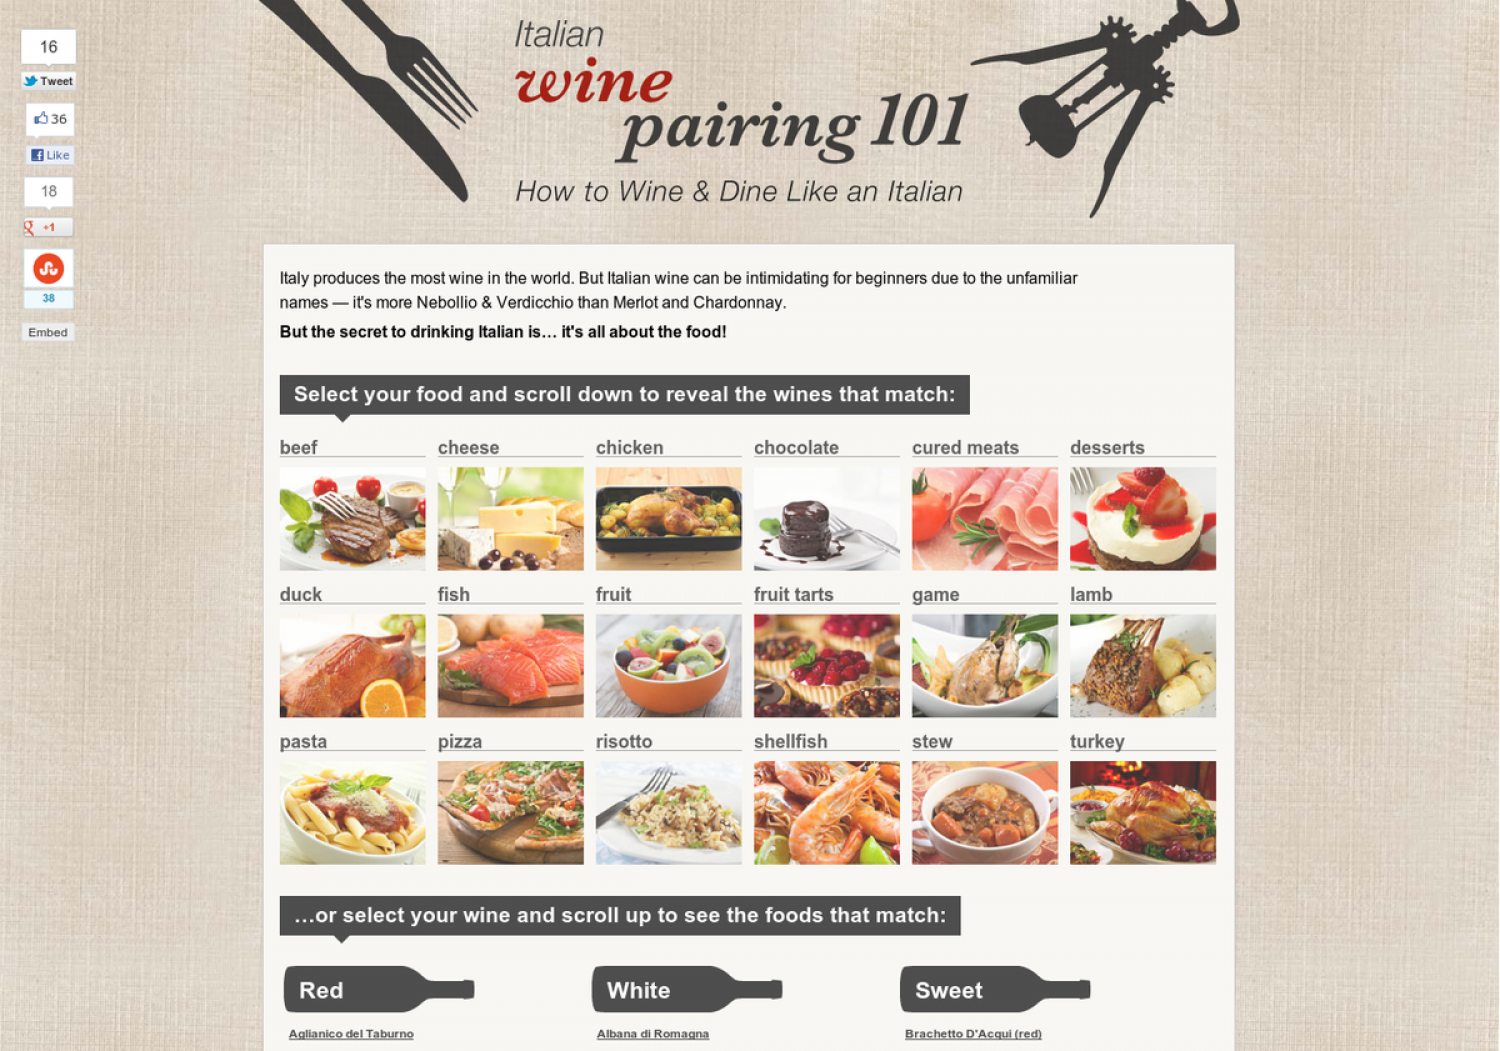 Interactive Italian wine pairings 101 Infographic